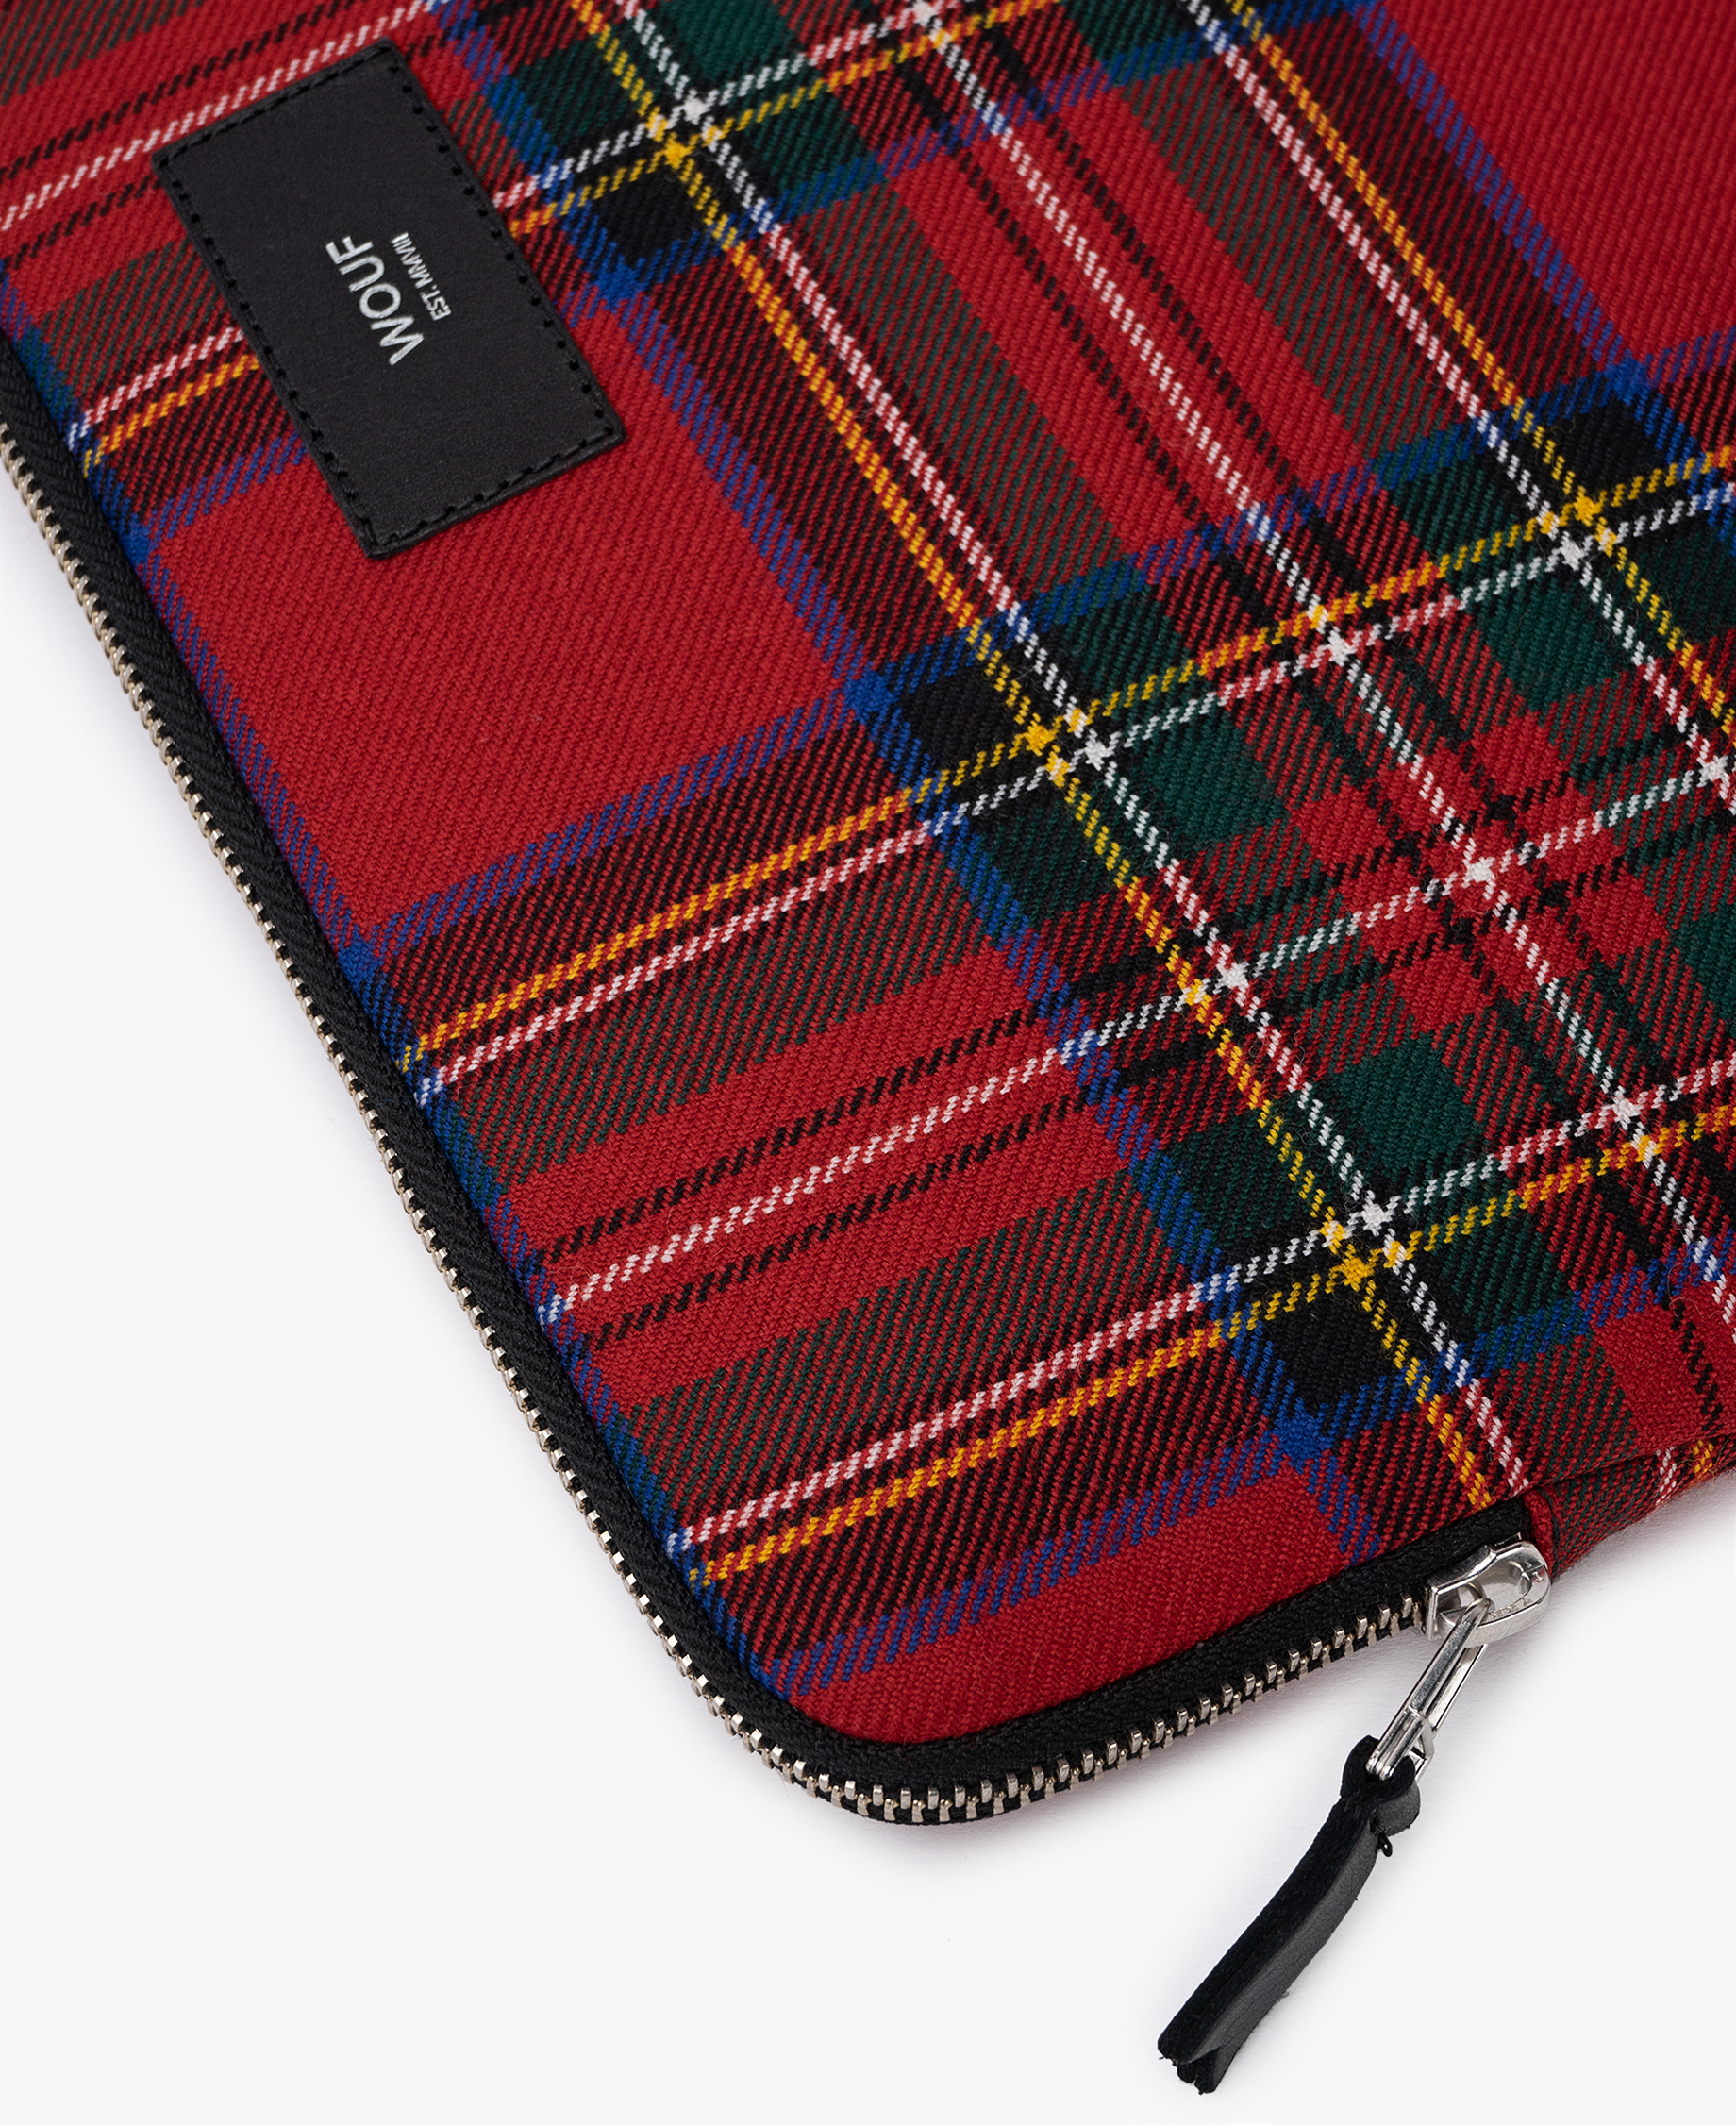 scottish man laptop case